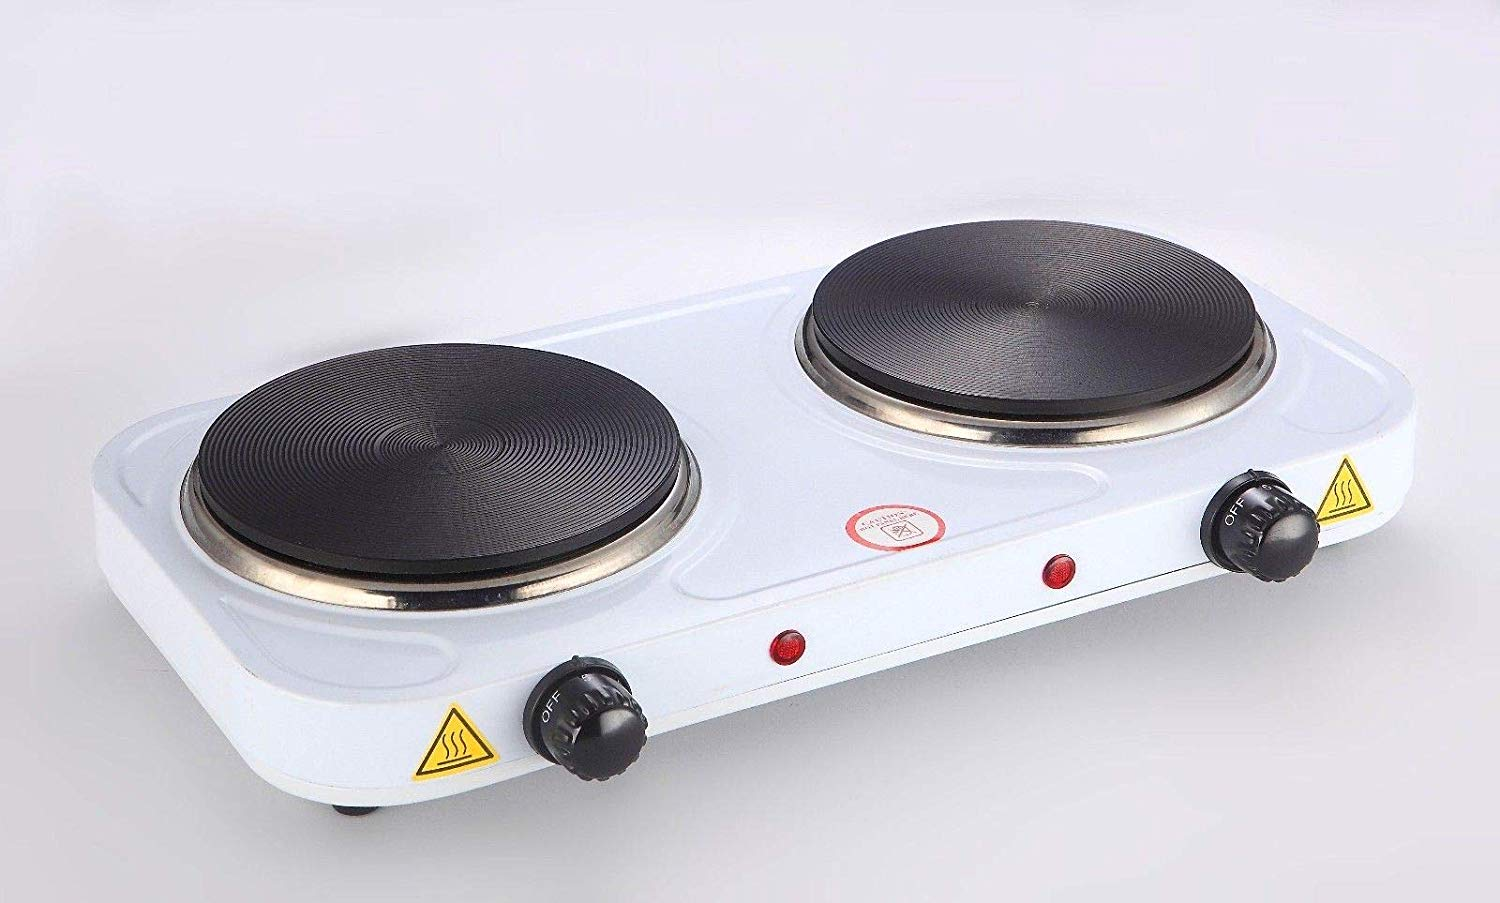 60bac357b79 Get Quotations · Cookmaster Electric Double Flat Stove 2000W Burner  Hotplate Portable Hotplates